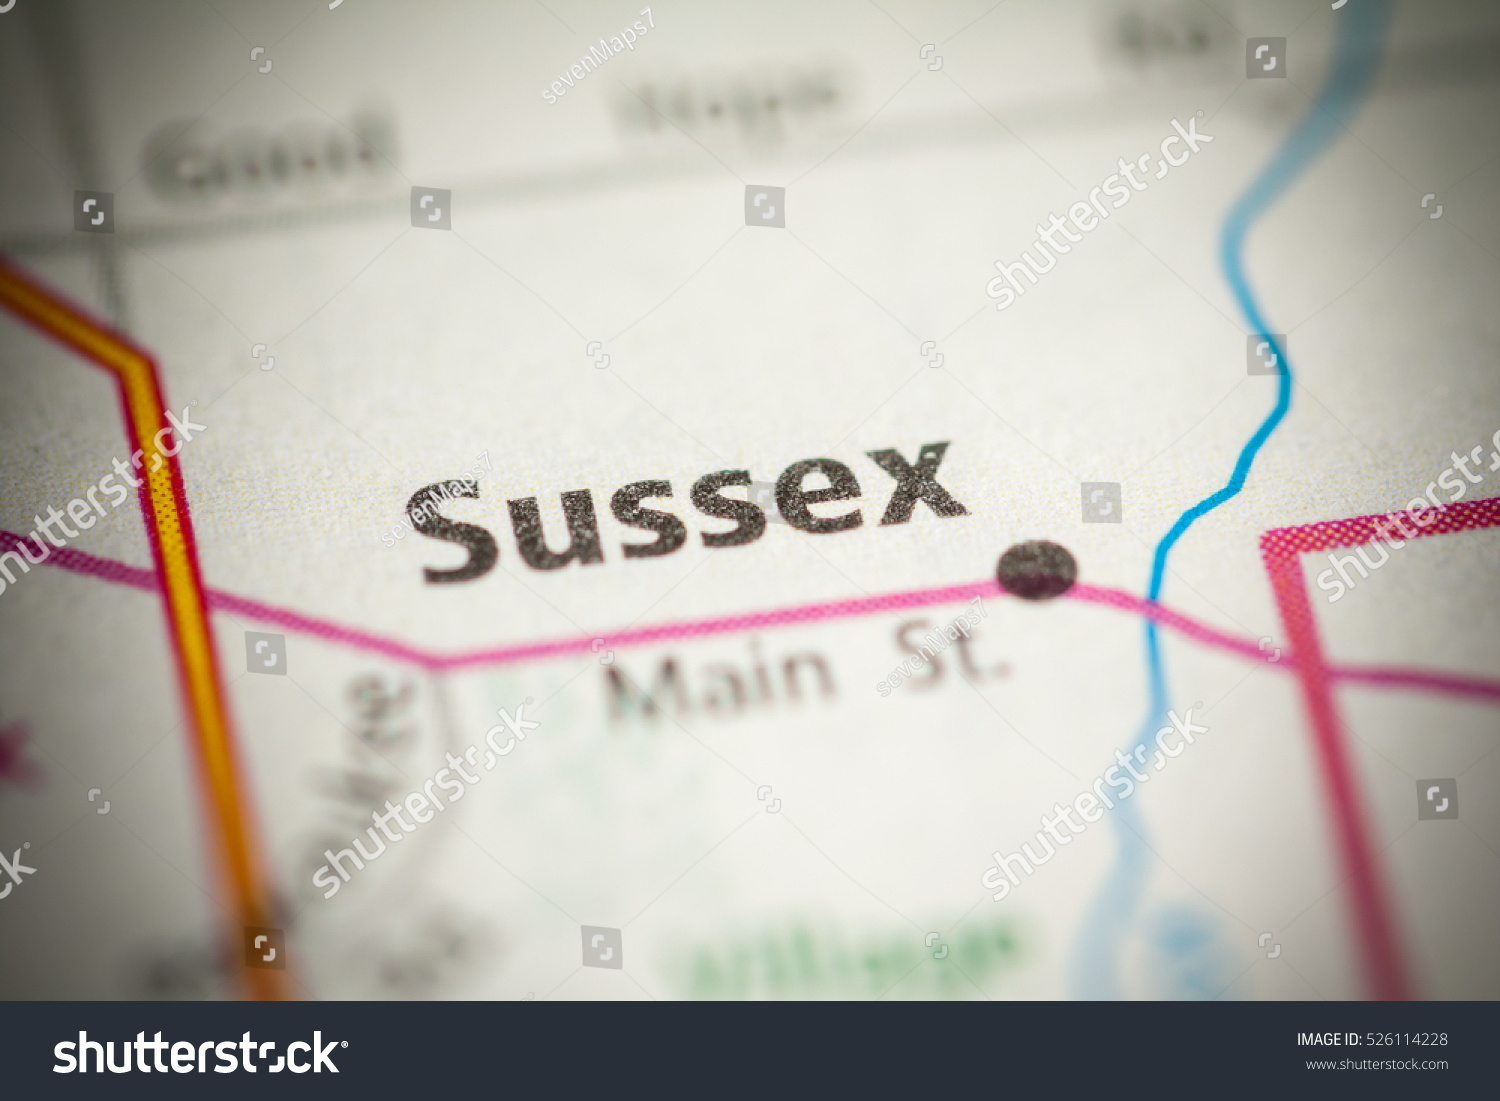 Sussex Wisconsin Map.Sussex Wisconsin Usa Stock Photo Edit Now 526114228 Shutterstock